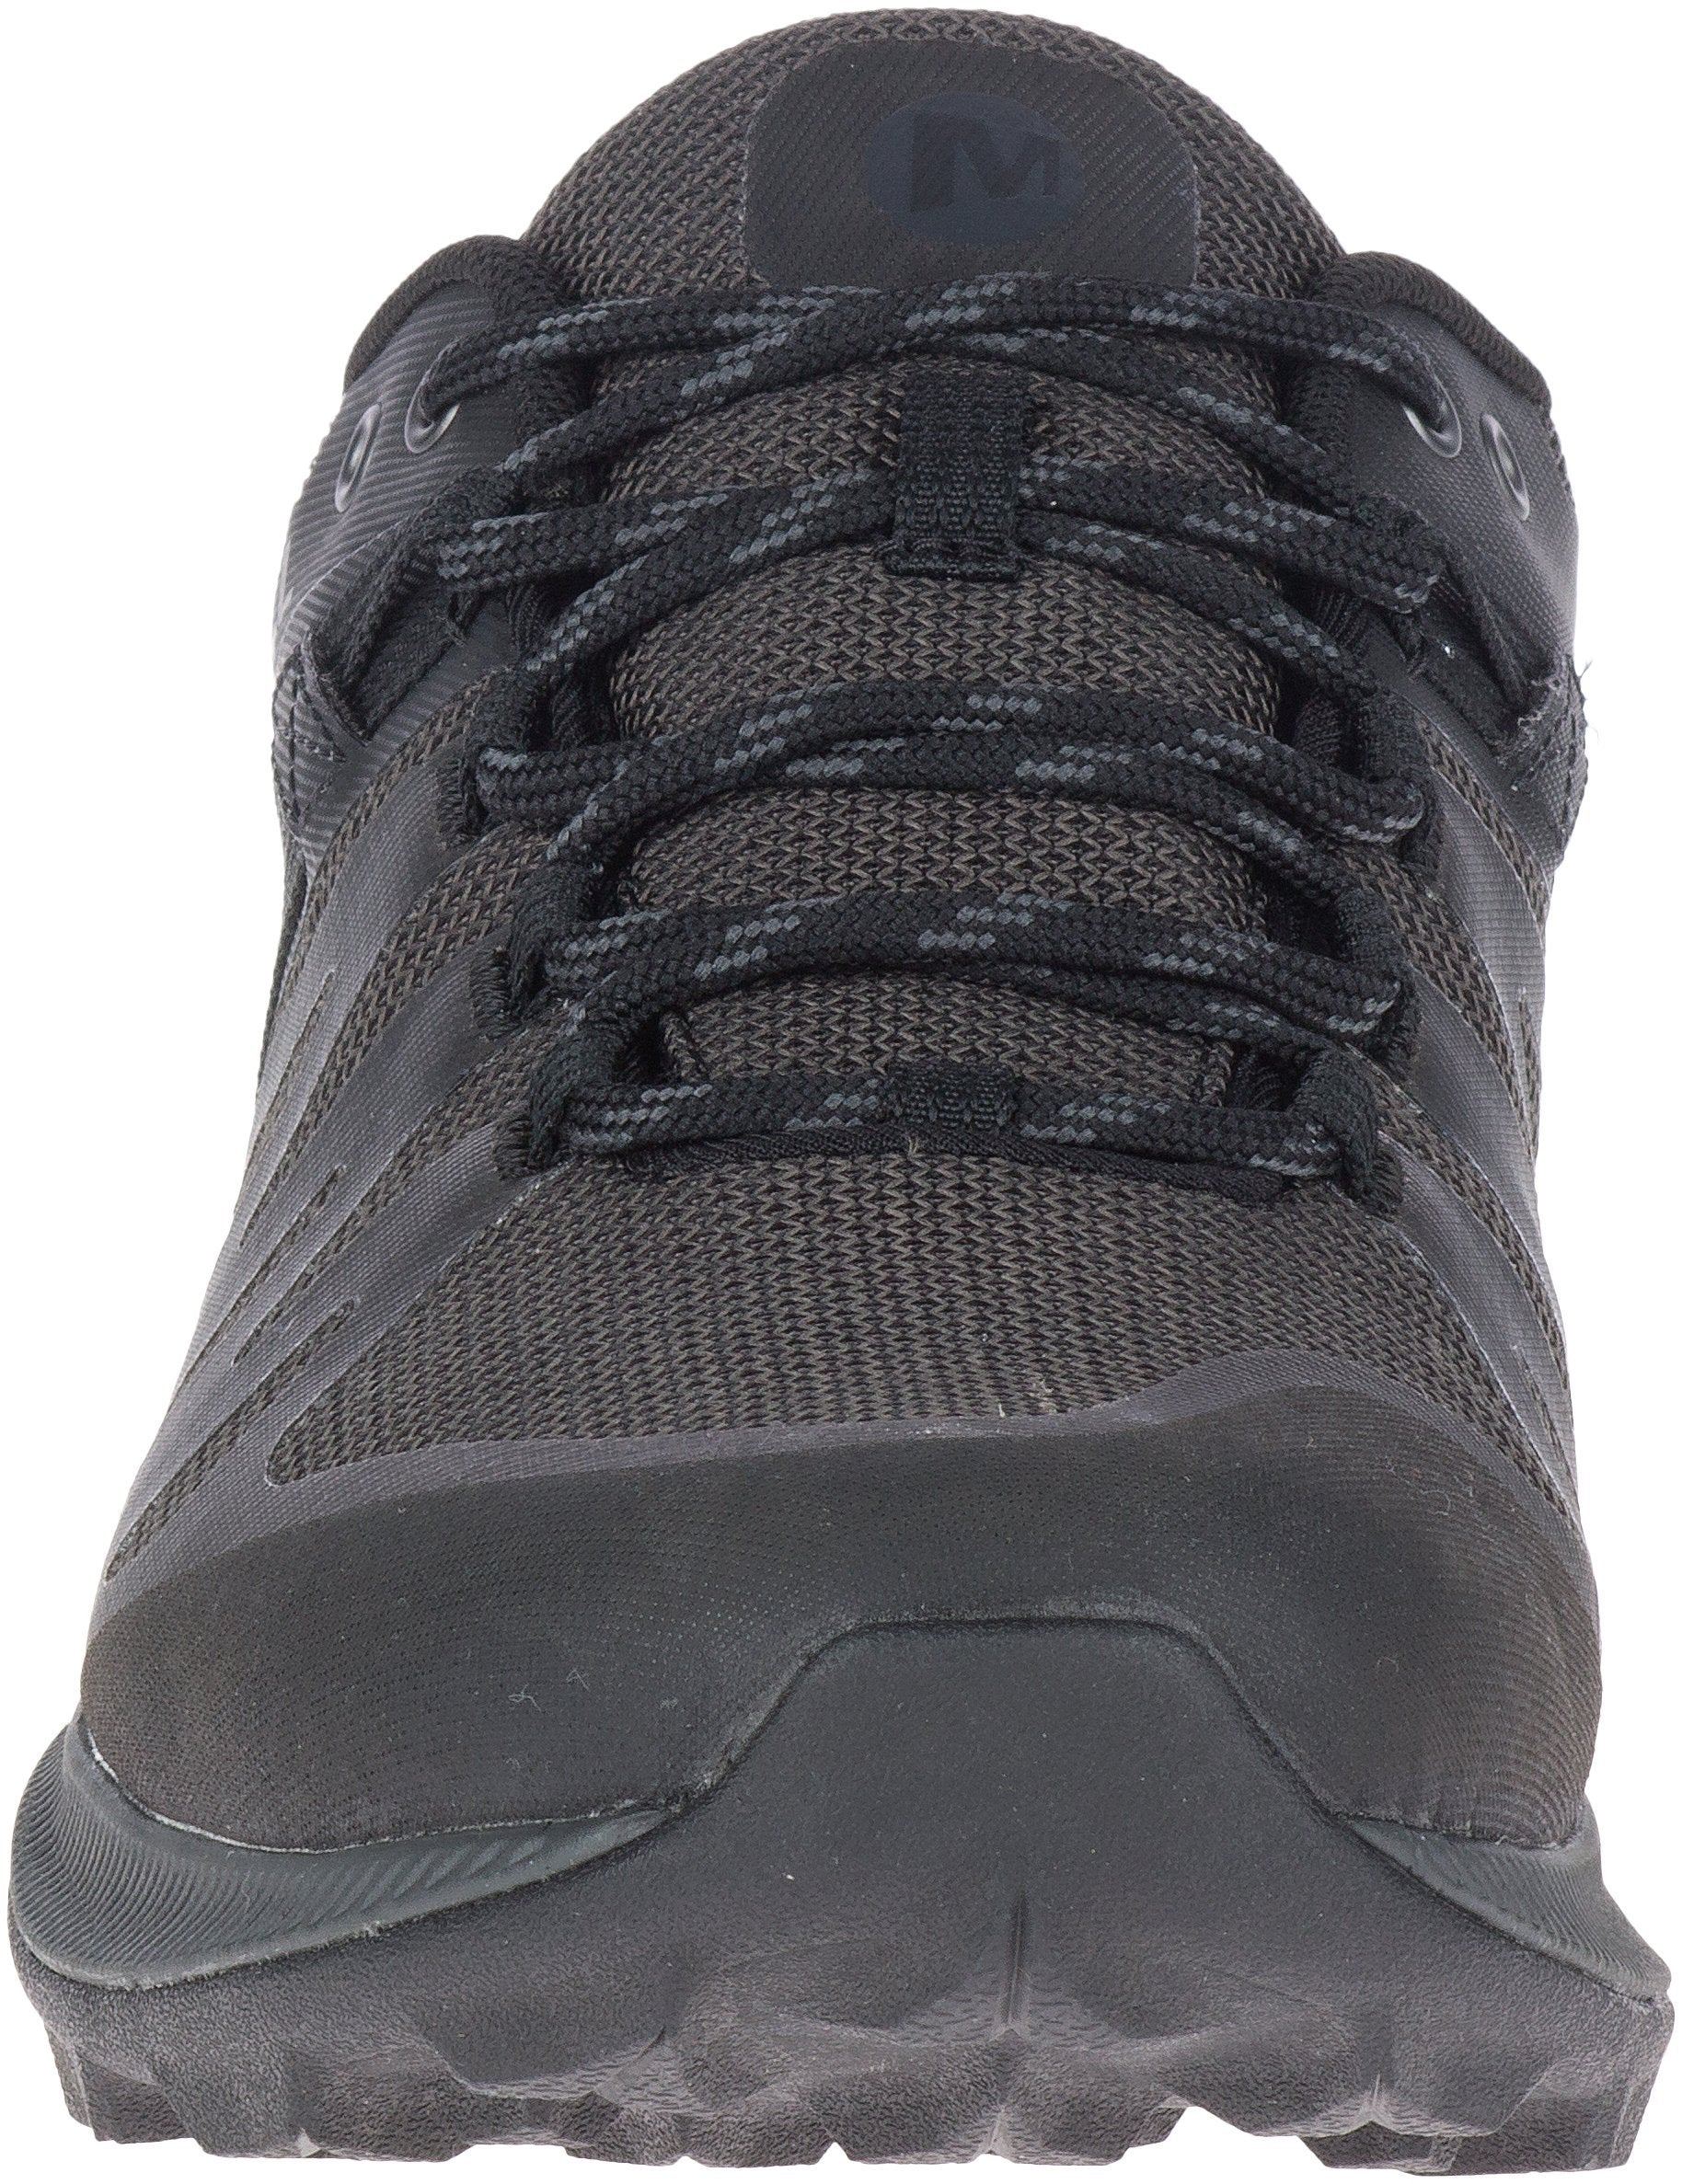 Merrell Men's Zion FST Waterproof - Black